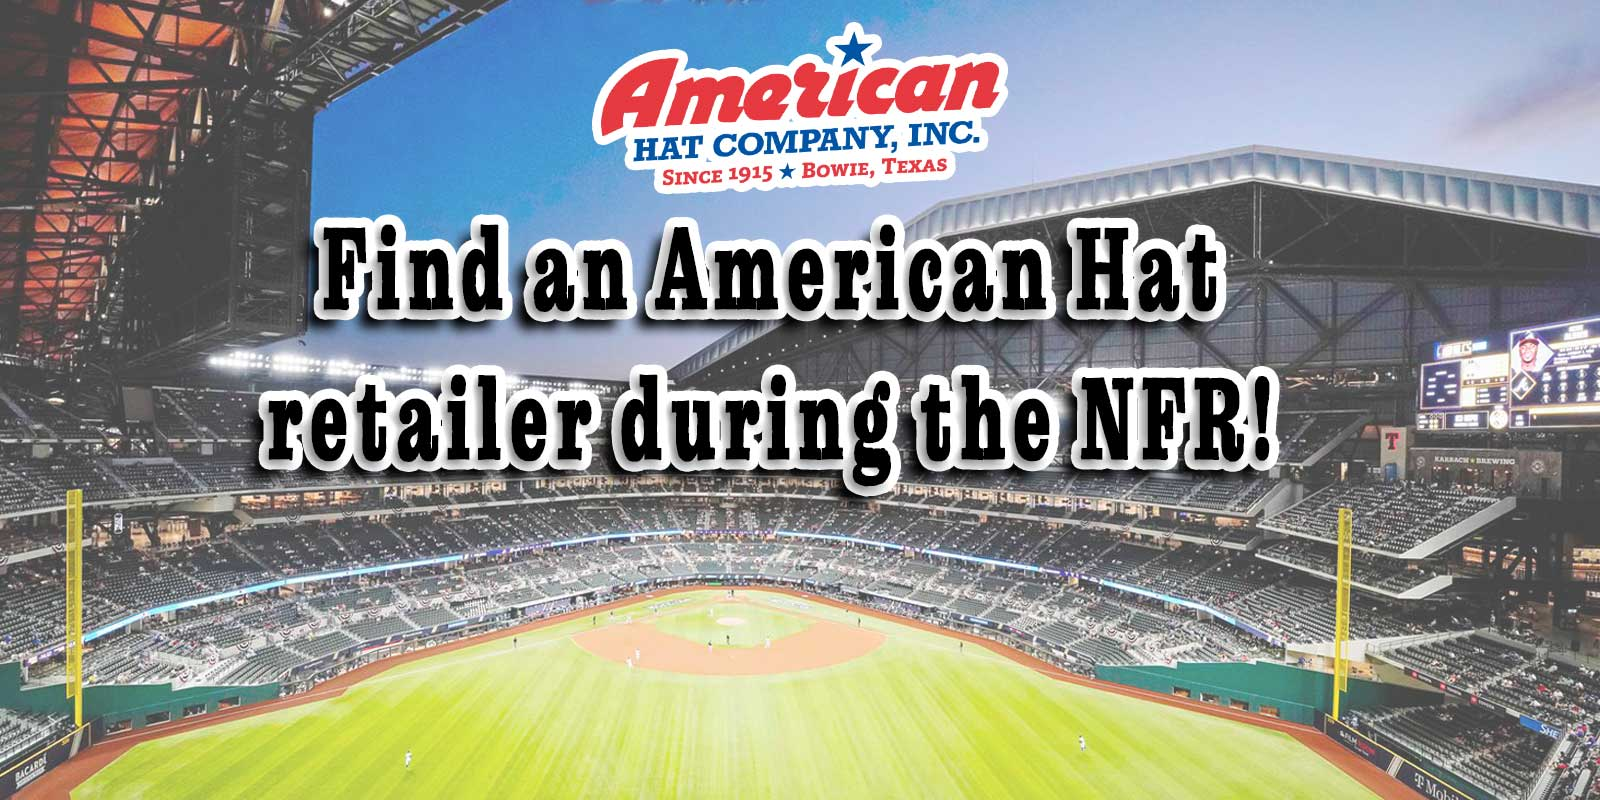 American Hat Company Nfr retailers